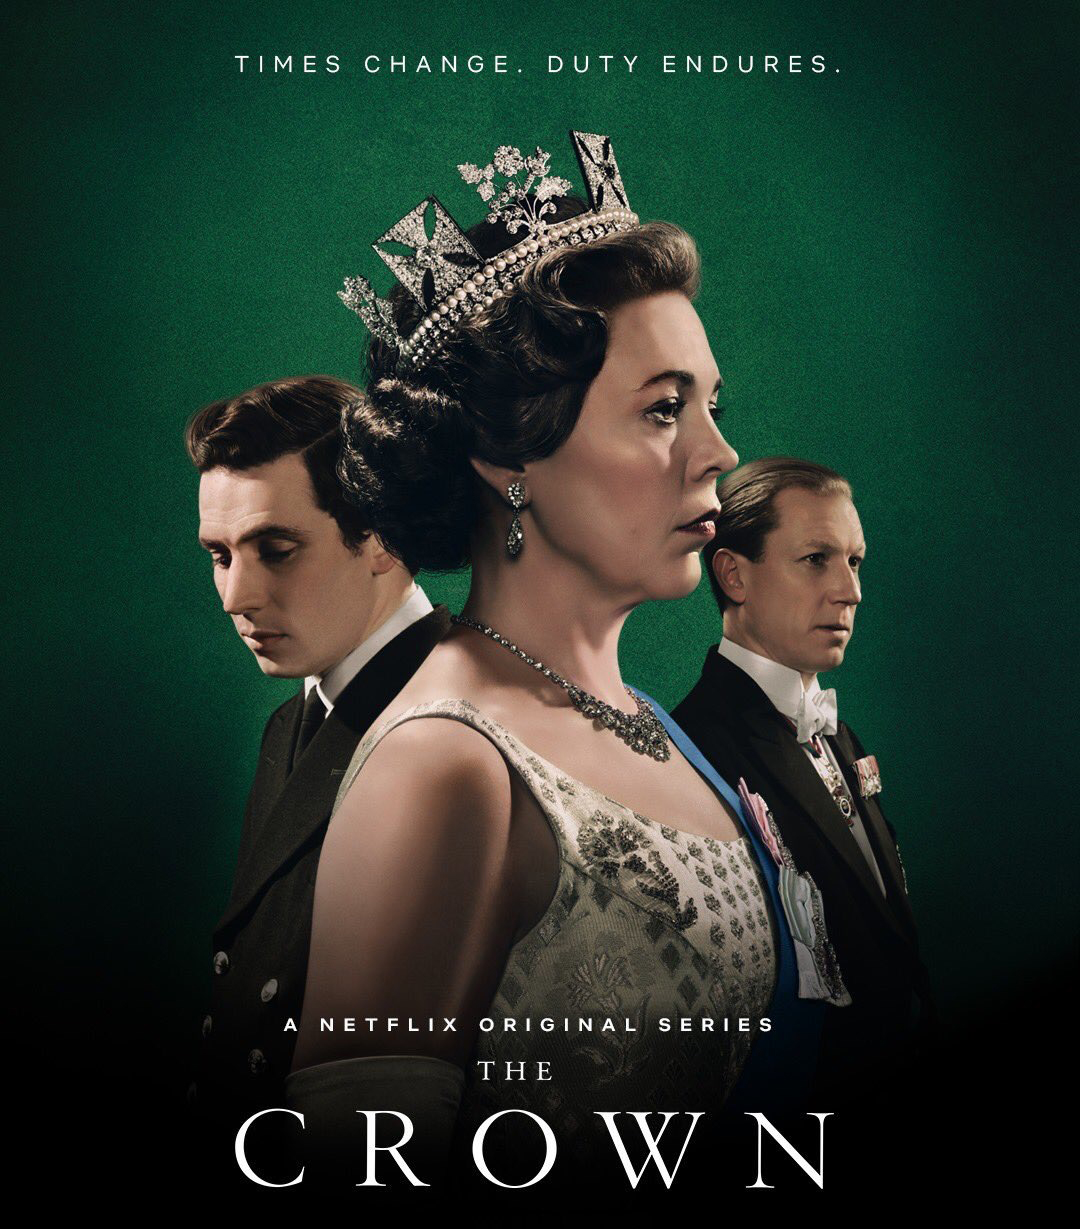 The Crown TV show